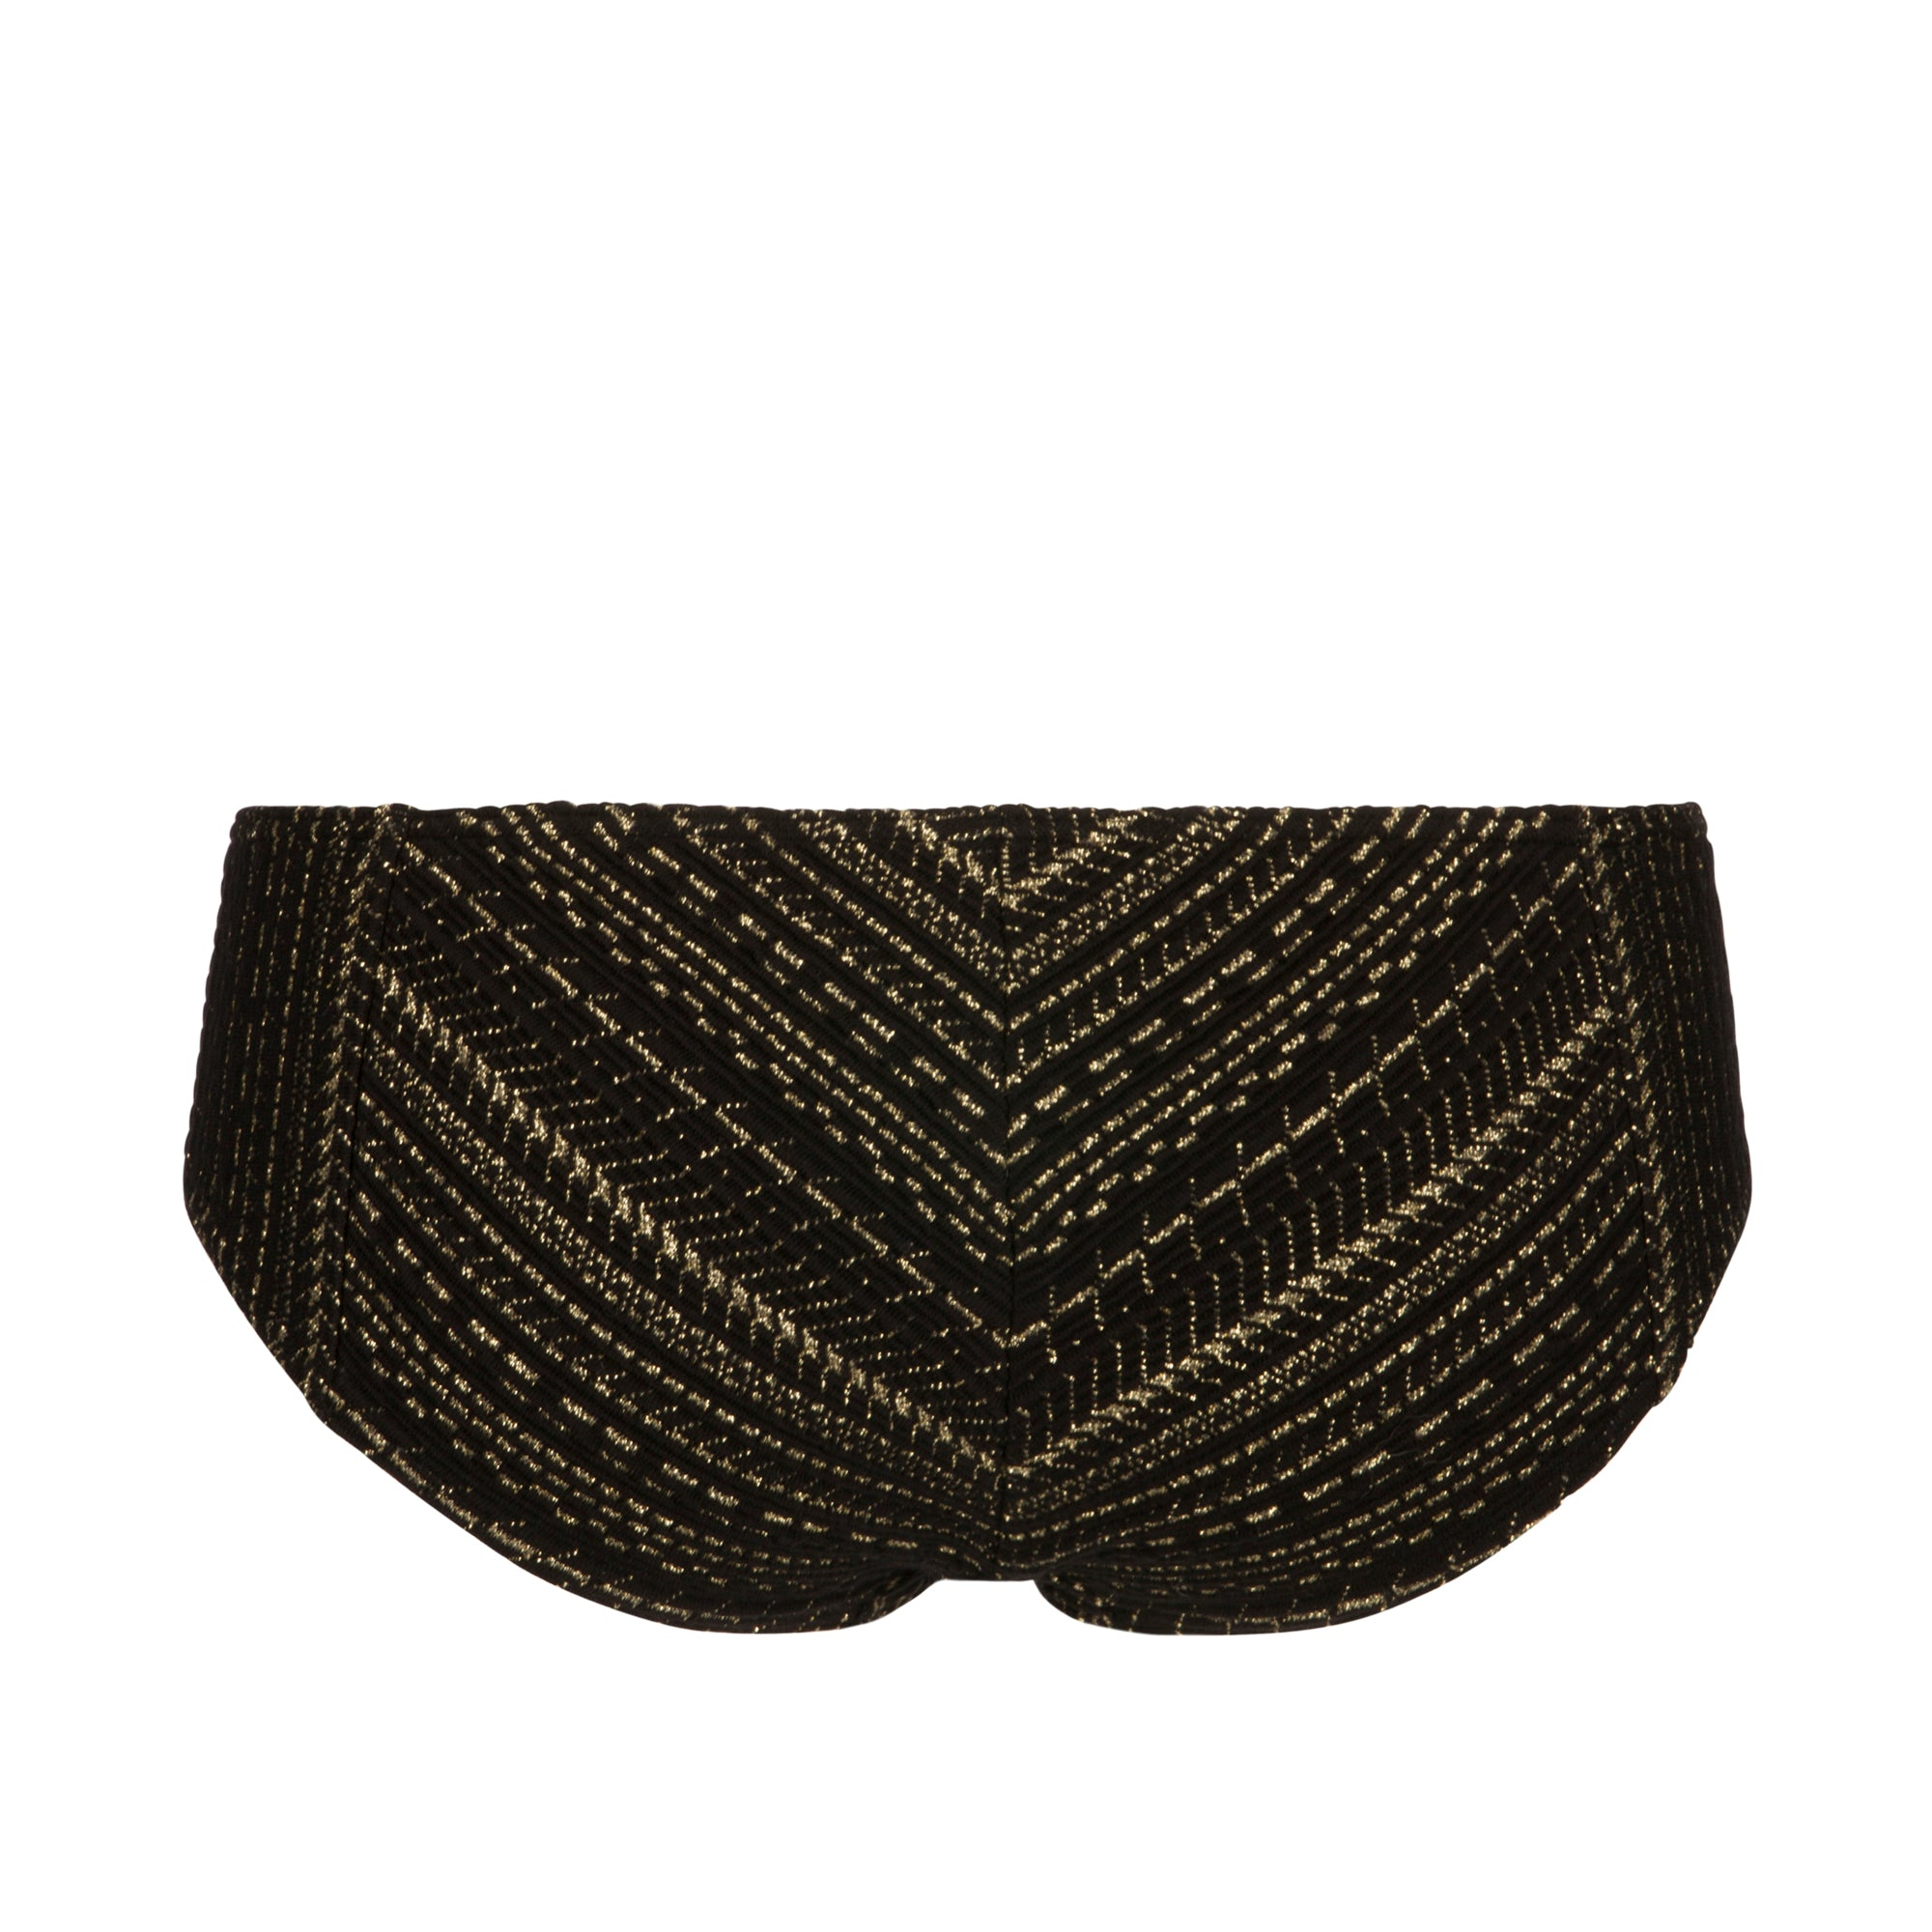 Culotte basse - Marlène New collection - Maud et Marjorie Lingerie